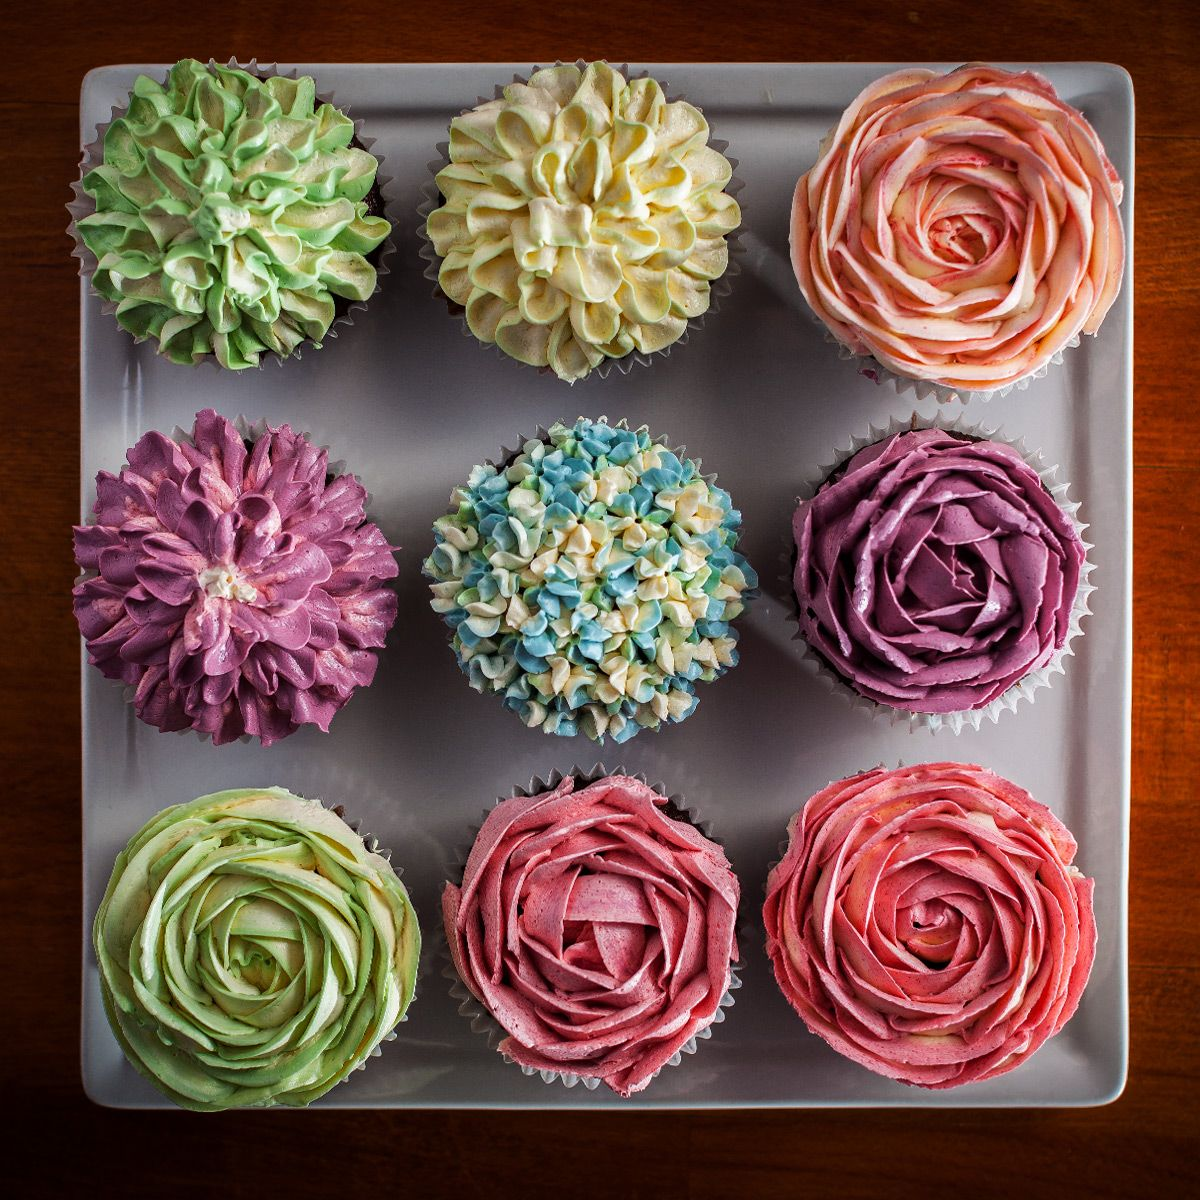 Vegan Flower Cupcakes (With images) Flower cupcakes